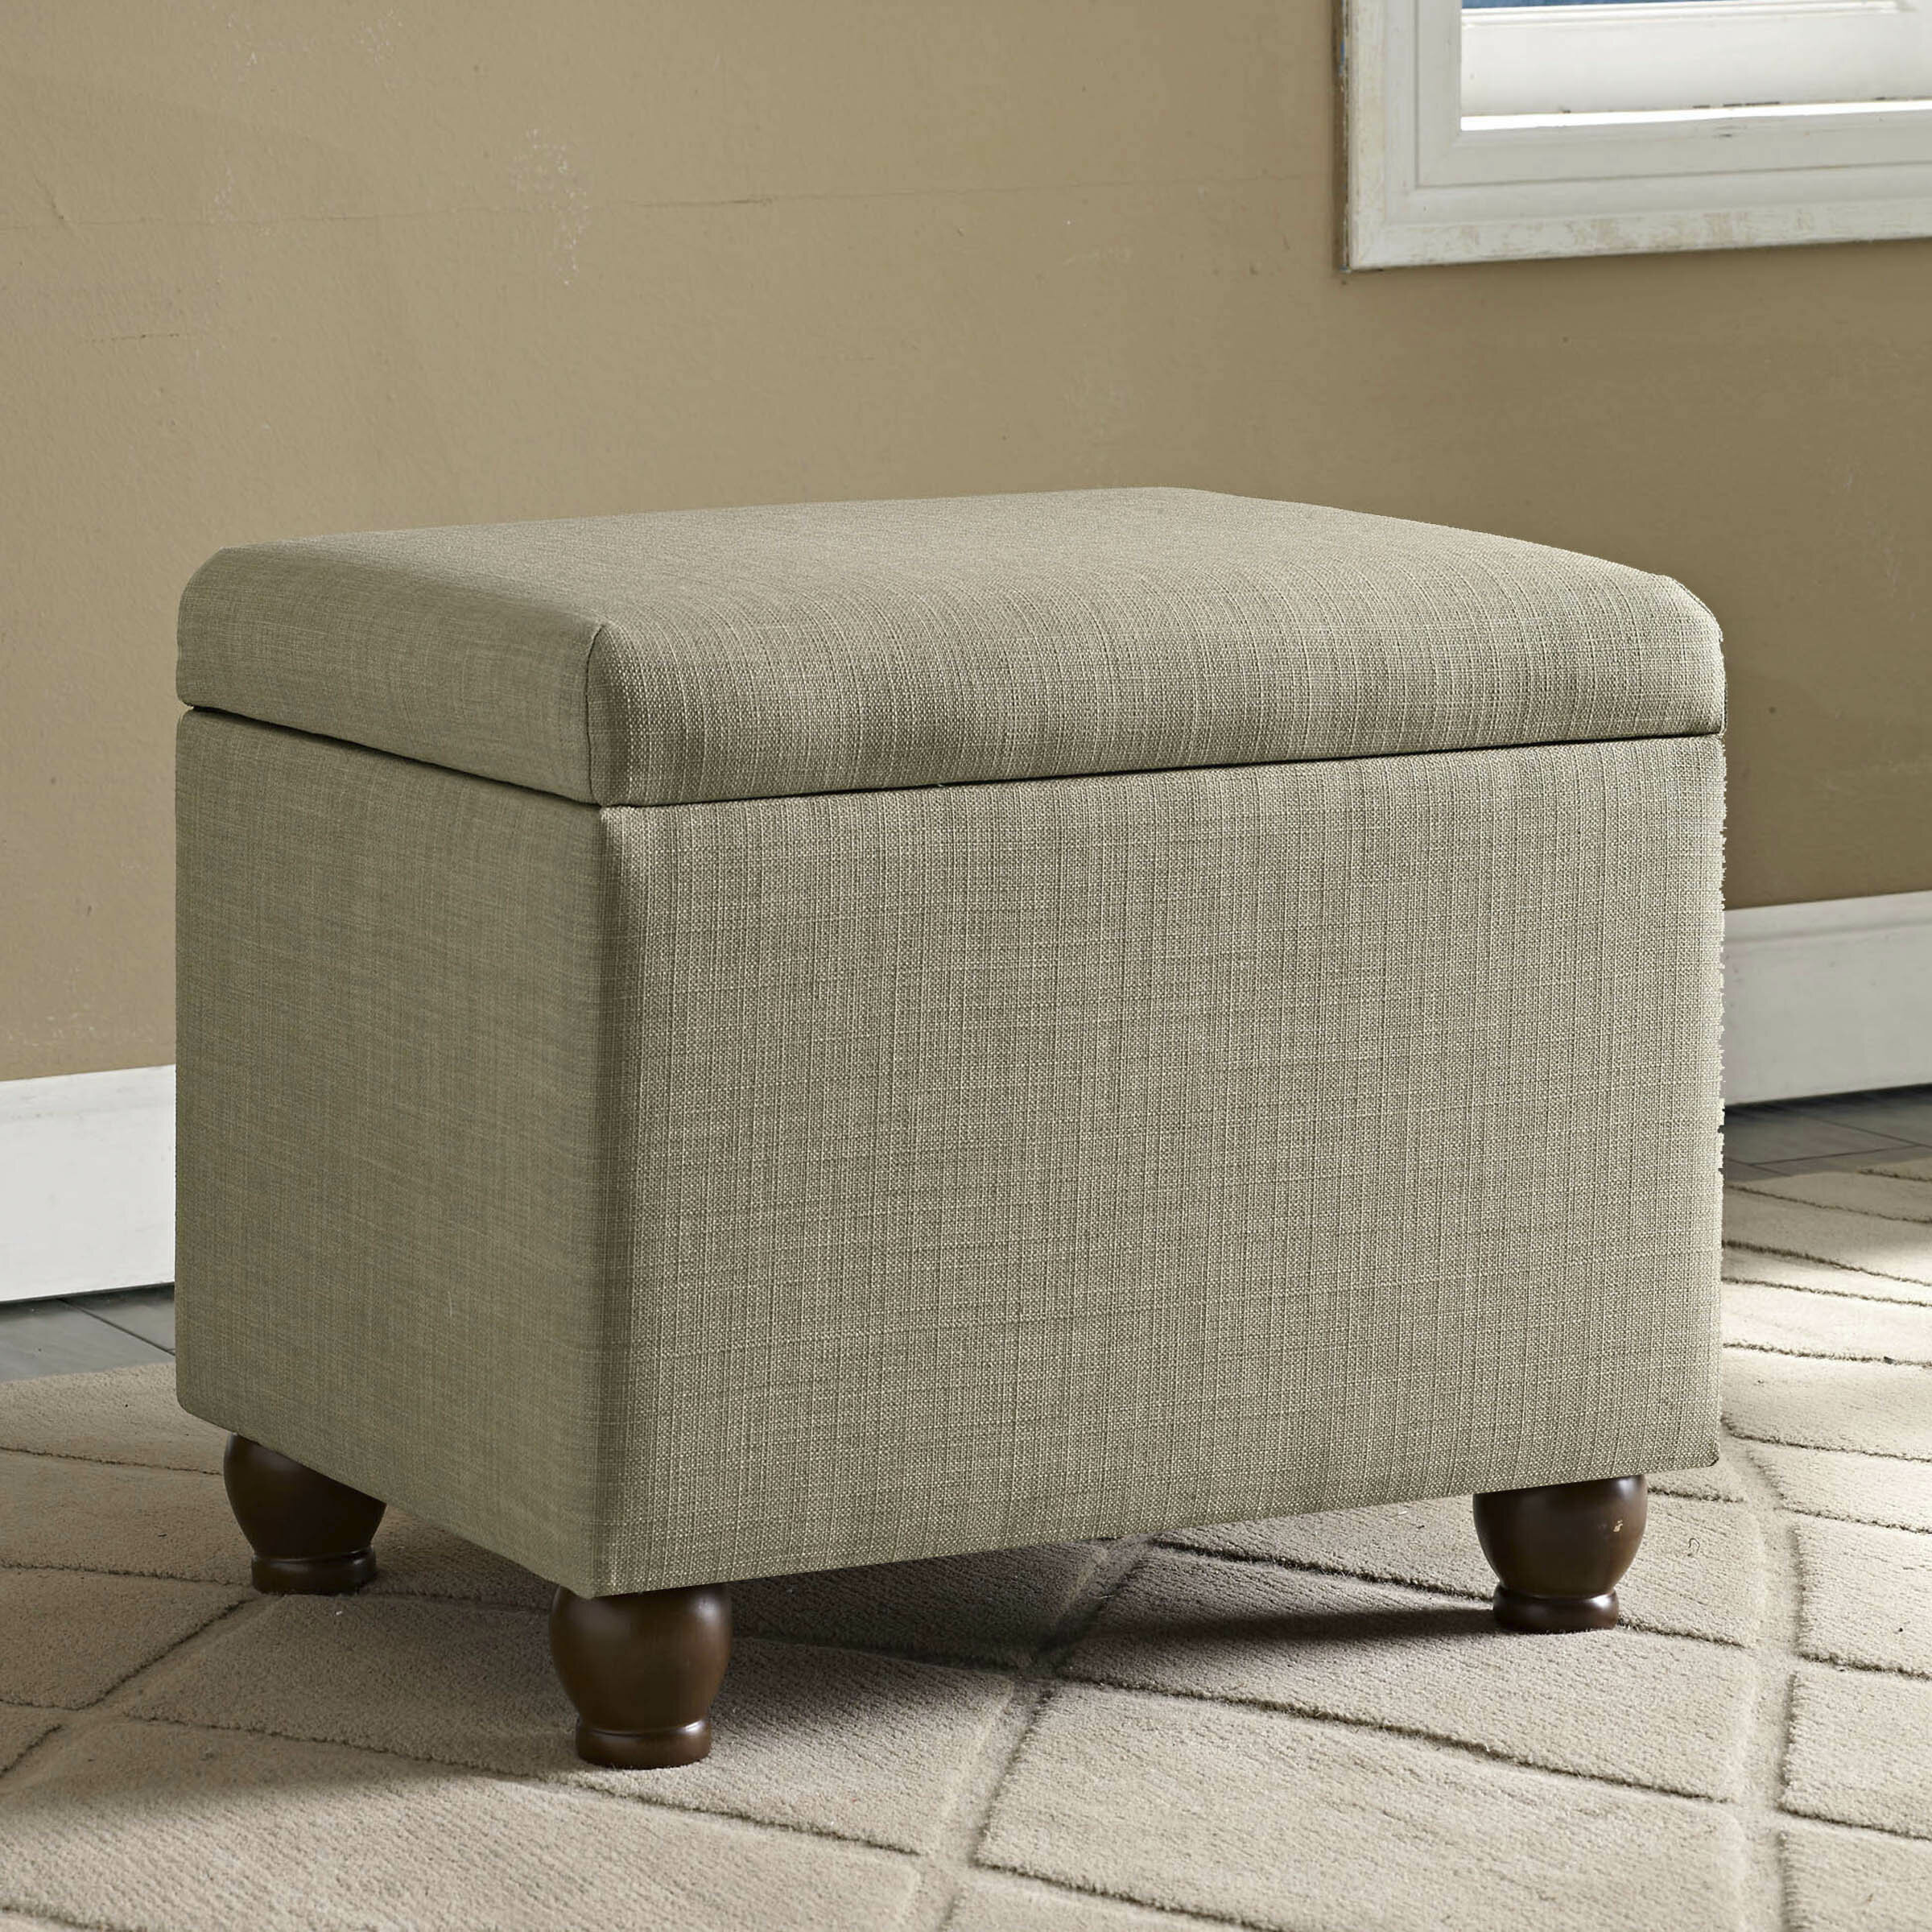 Fantastic Birmingham Storage Ottoman Gmtry Best Dining Table And Chair Ideas Images Gmtryco